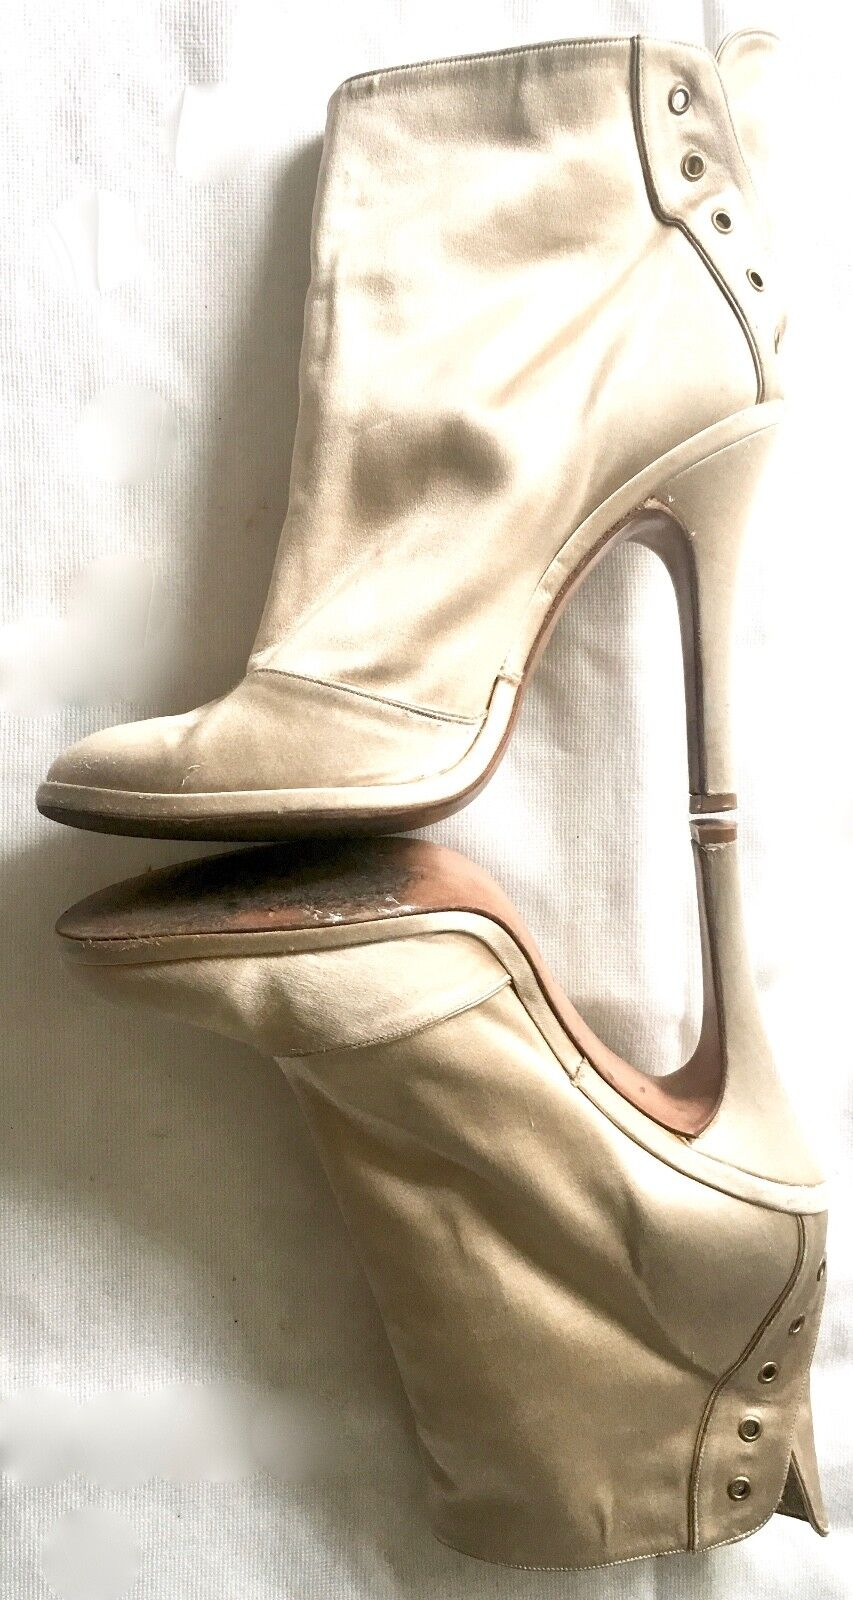 MARC JACOBS Champagne Beige Satin Lace Up Booties Ankle Boots, Boots, Boots, Size 40 Eur 9 US 92ffd4